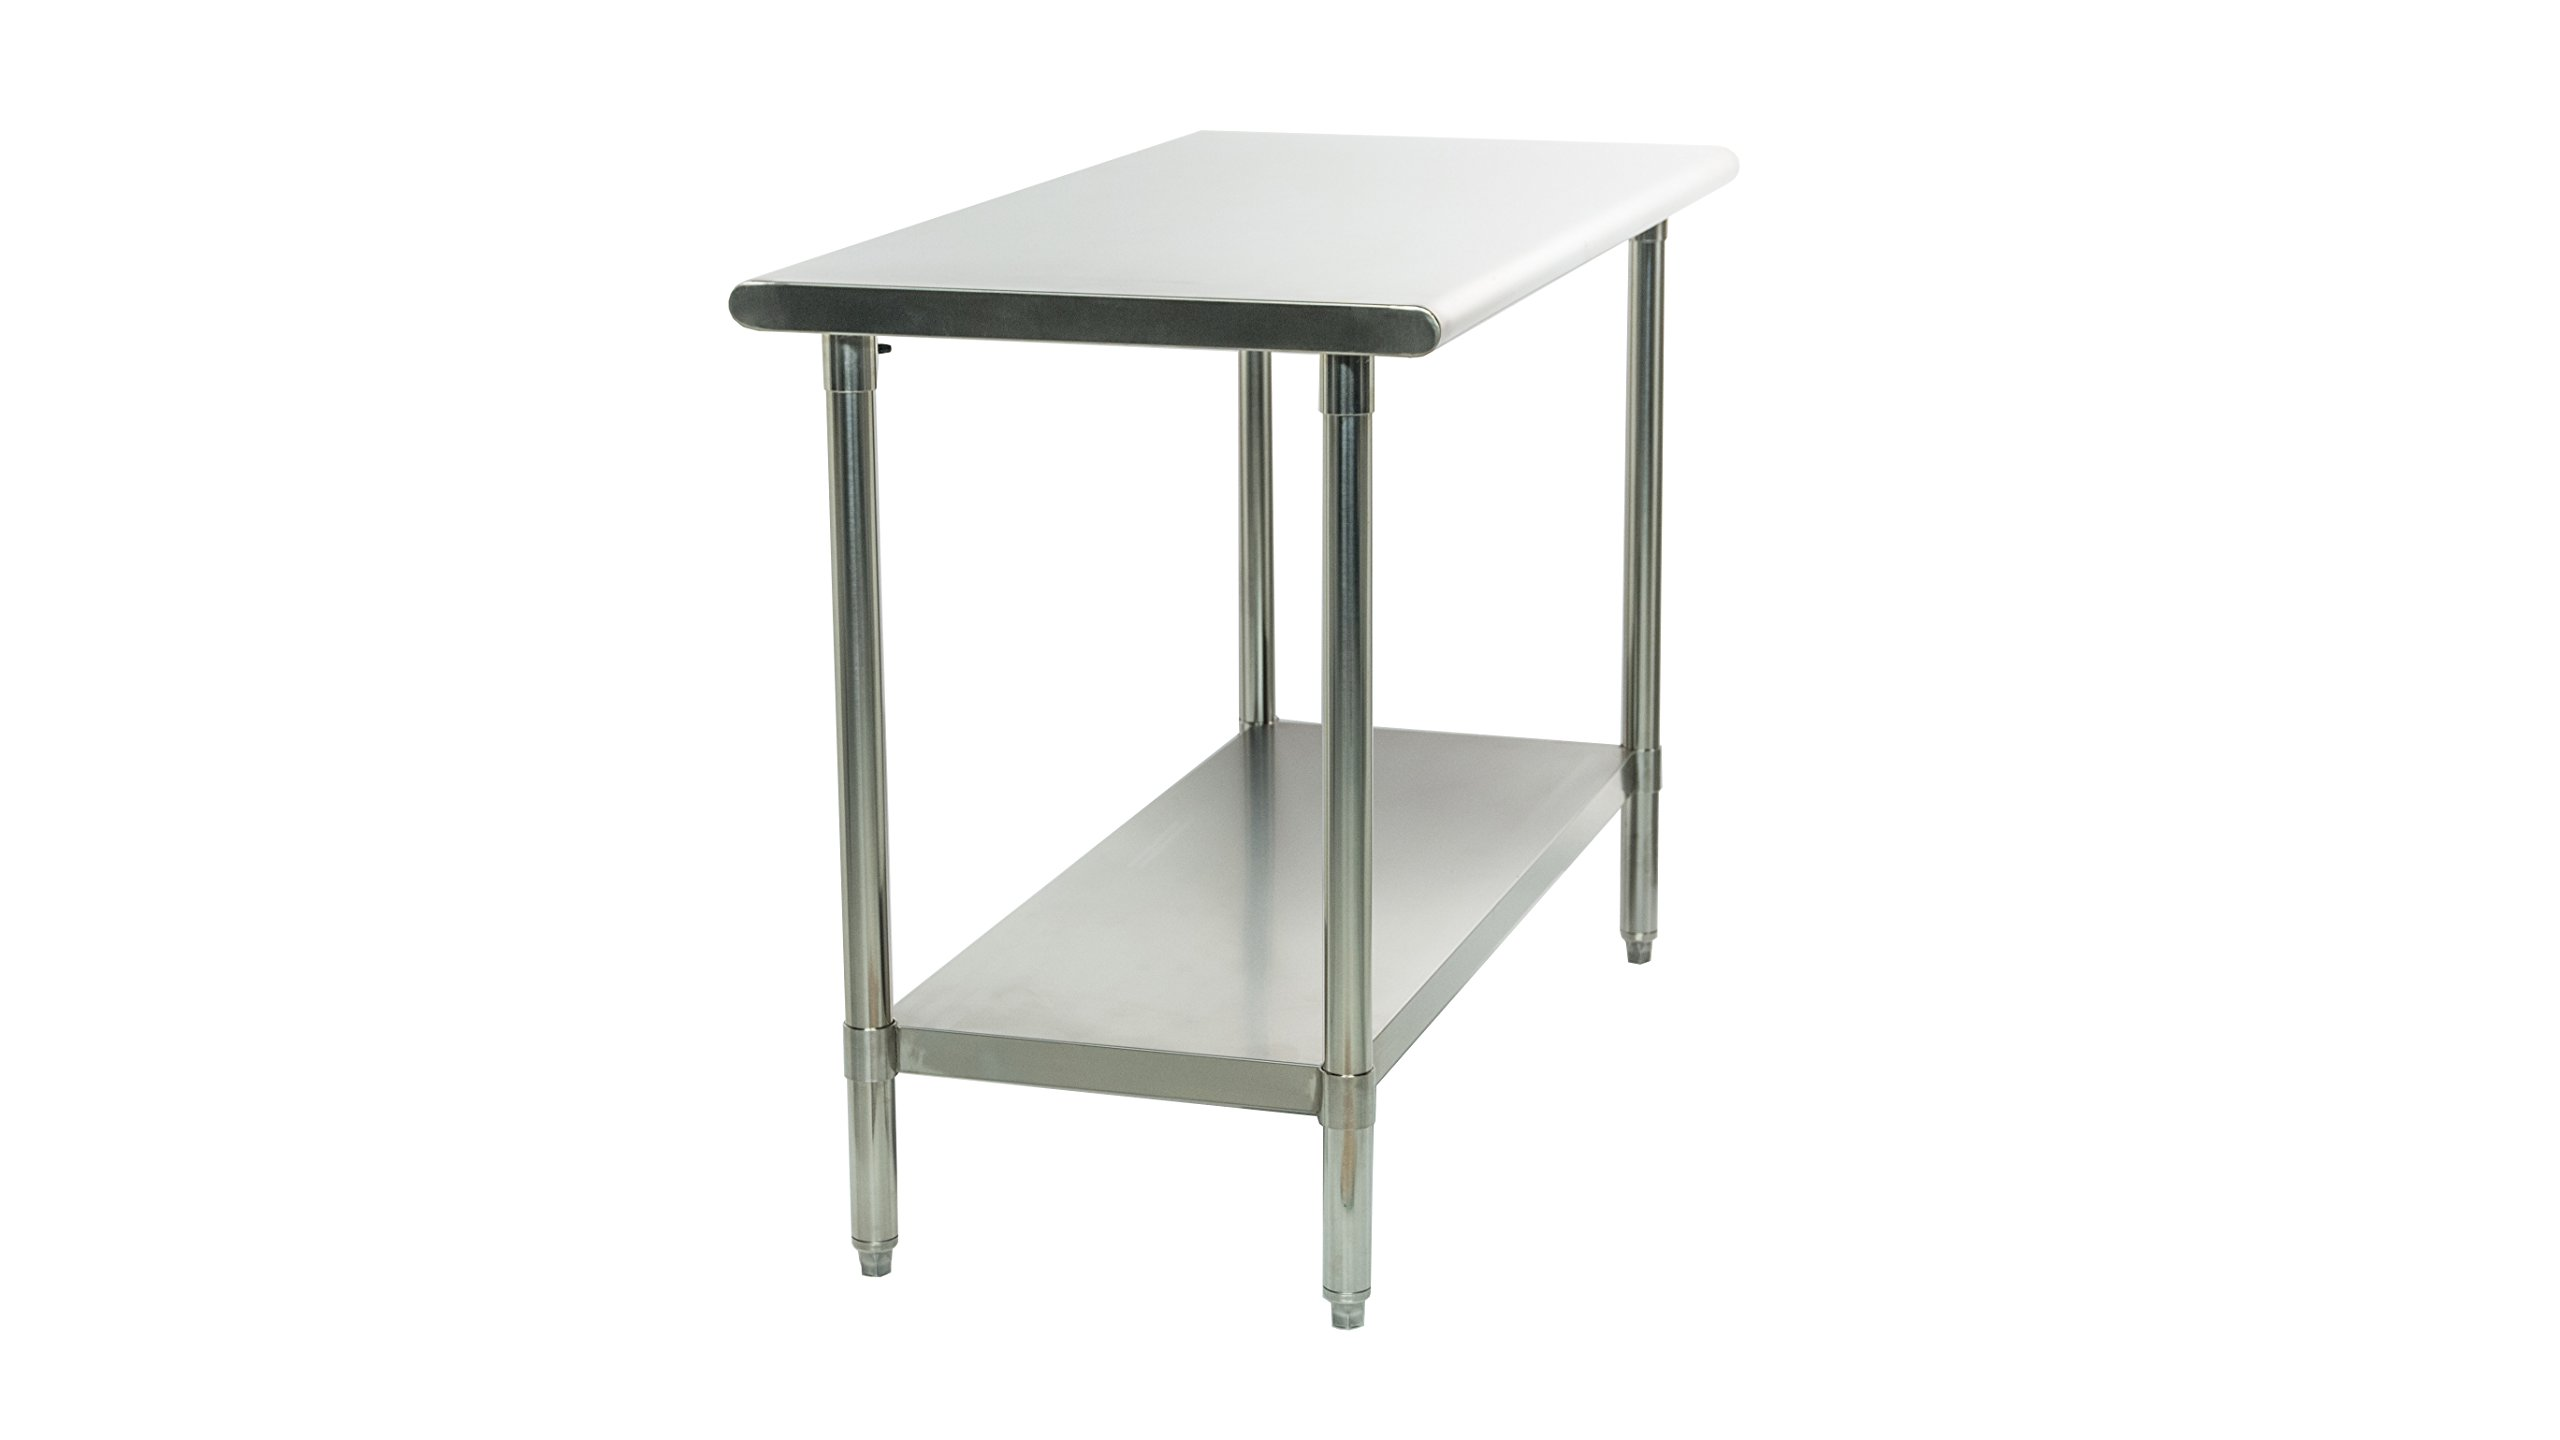 TRINITY EcoStorage NSF Stainless Steel Table, 48-Inch by Trinity (Image #7)